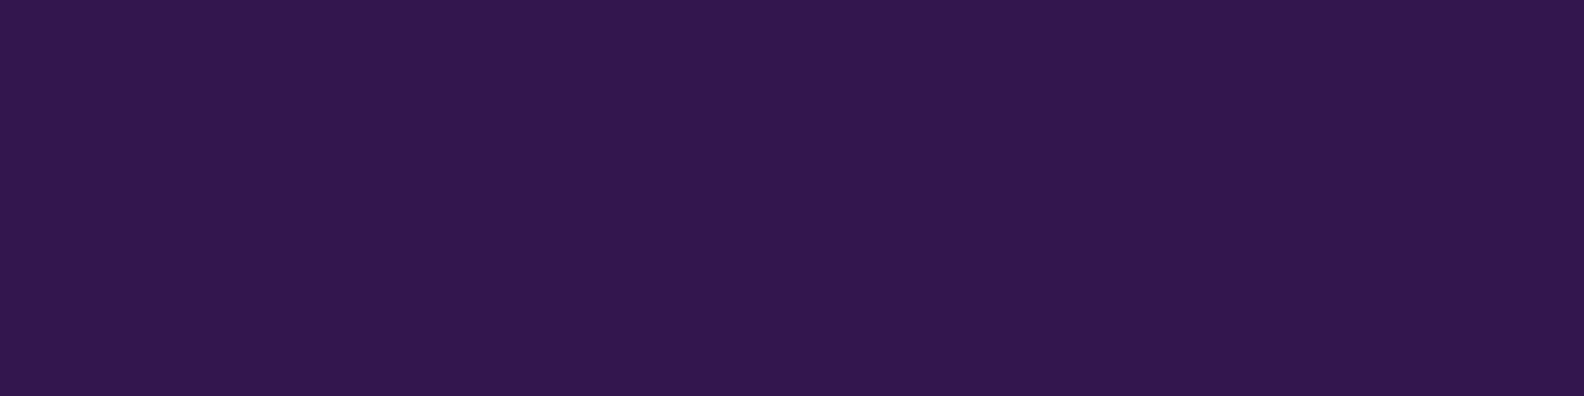 1584x396 Russian Violet Solid Color Background